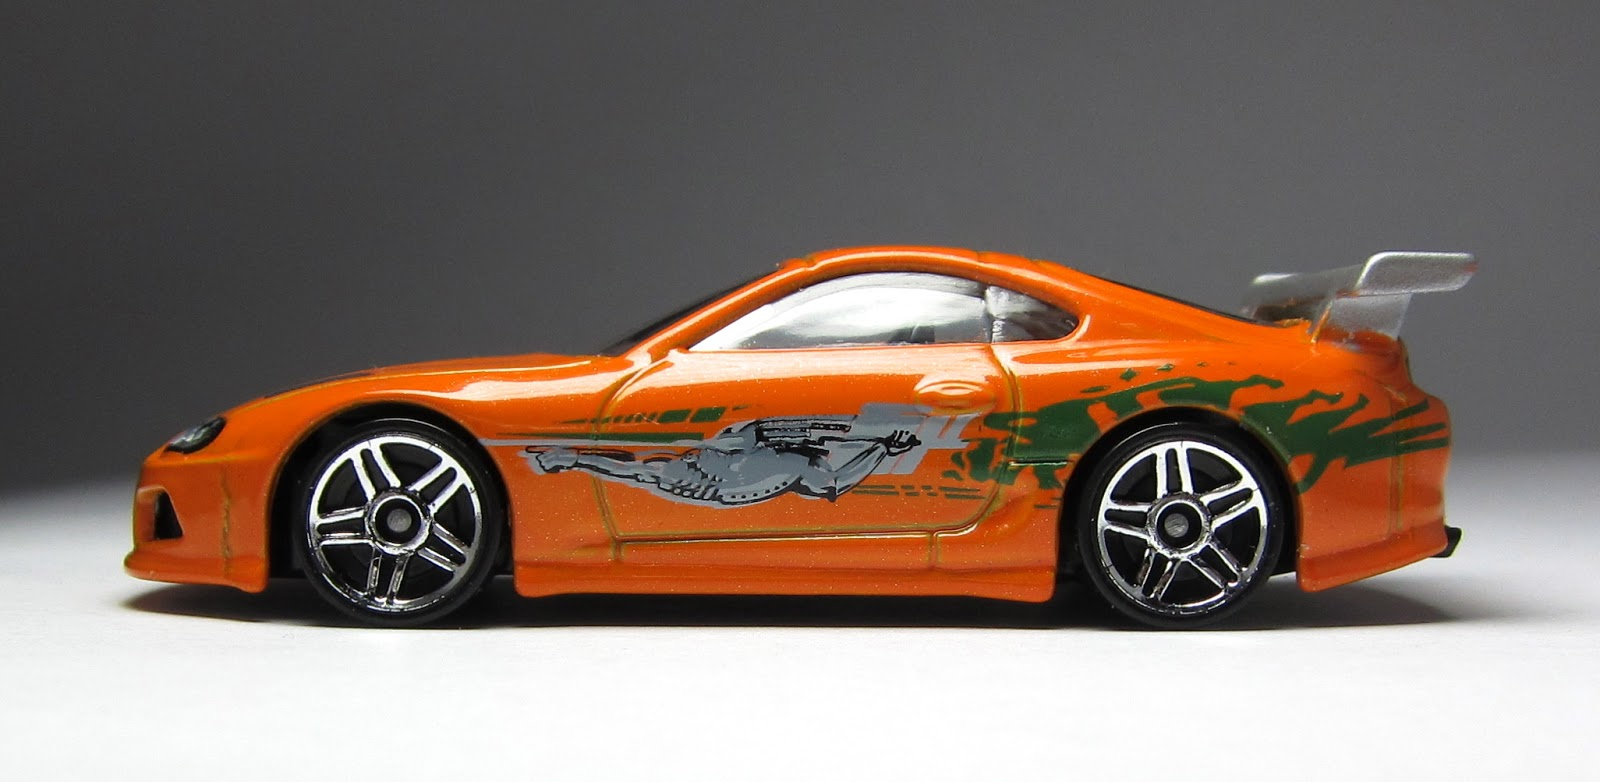 Craigslist Toyota Supra For Sale >> Fast And Furious Hot Wheels.html | Autos Weblog